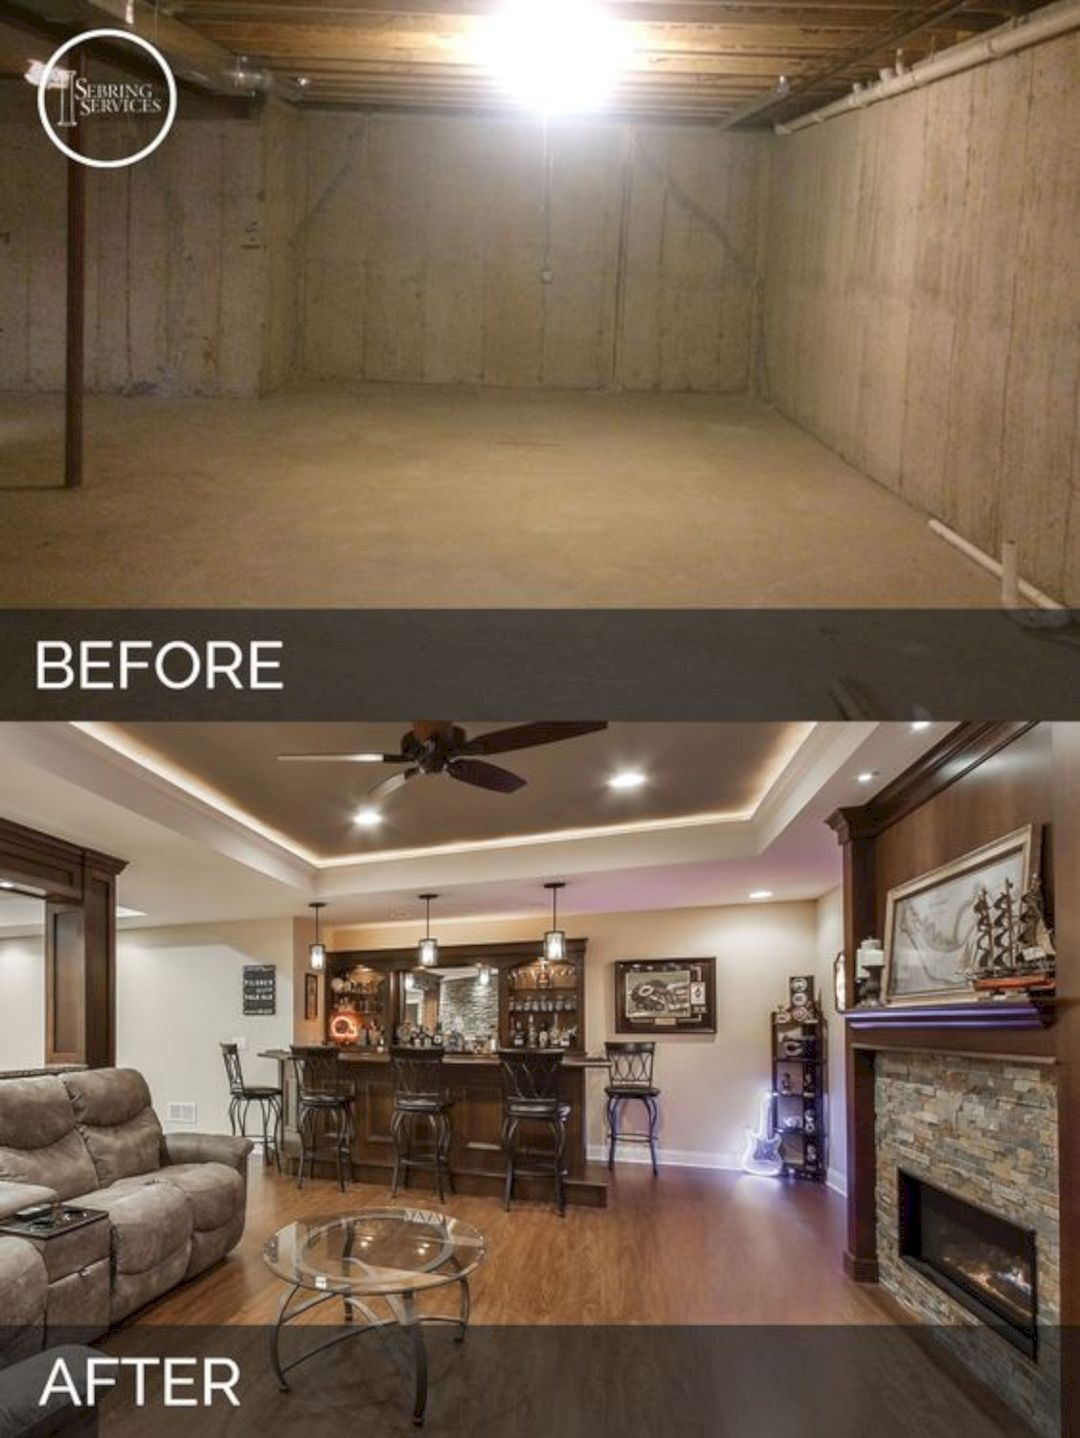 Pin by Martha Sitepesumong on Ideas for the house | Pinterest ... Homemade Stage Lighting Ideas Html on worship stage design ideas, homemade light box ideas, homemade security ideas, homemade costumes ideas, homemade dance floor ideas, homemade chairs ideas,